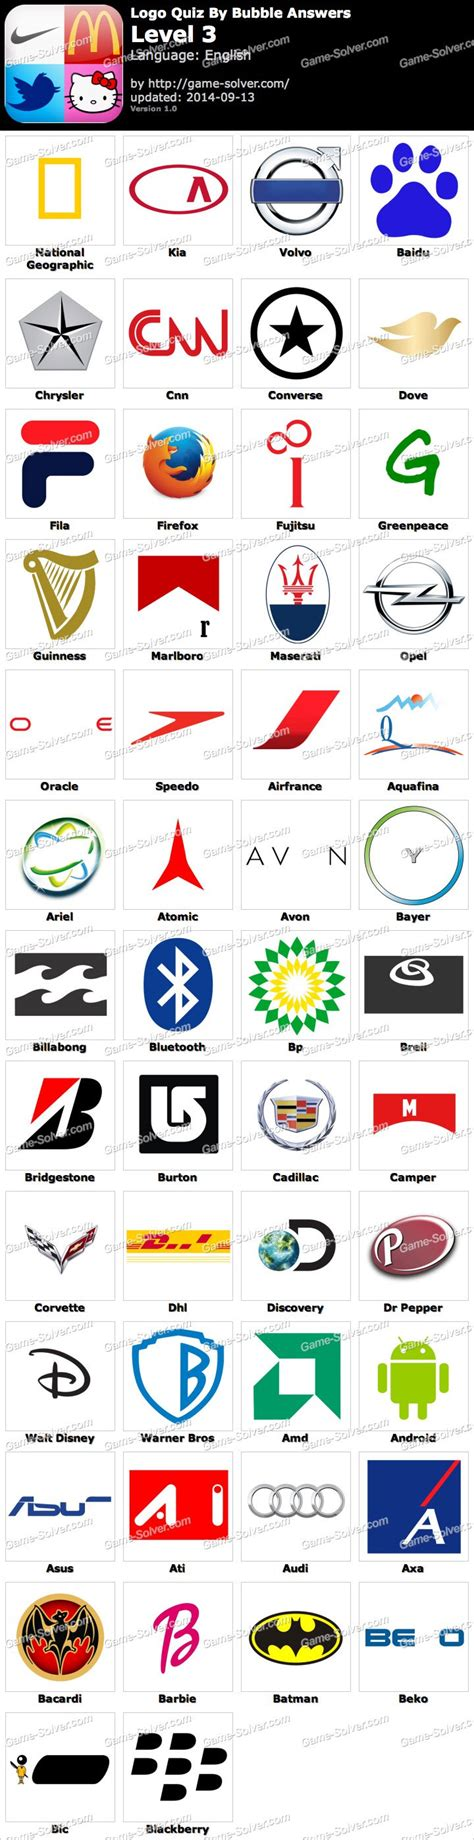 logo quiz by bubble answers level 6 game solver image gallery japanese technology company logos